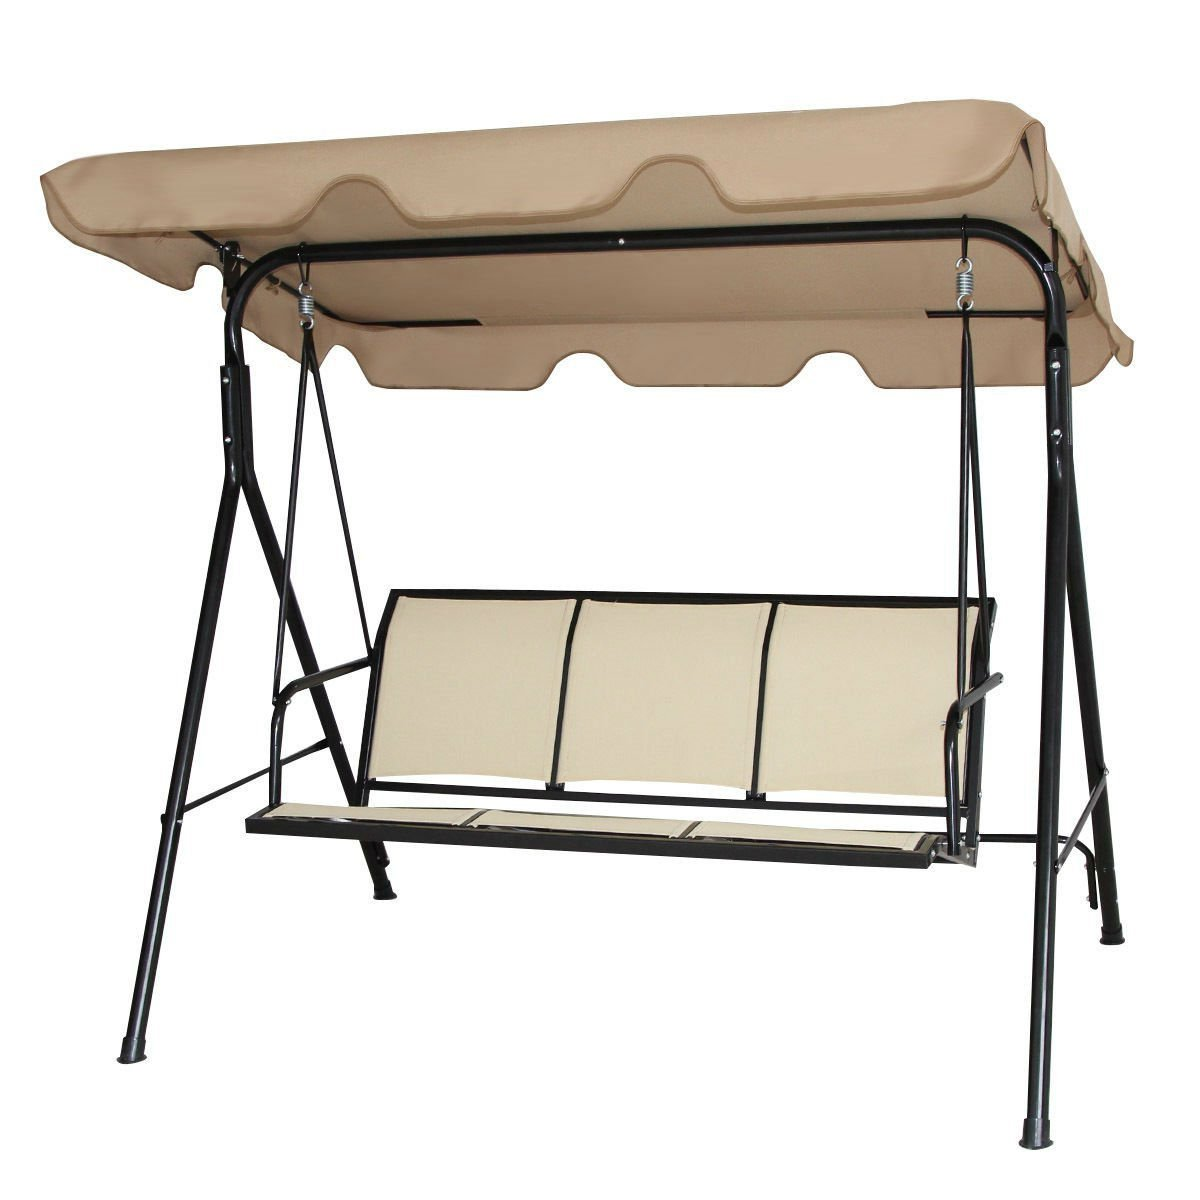 Outdoor Porch Patio 3-Person Canopy Swing in Light Brown